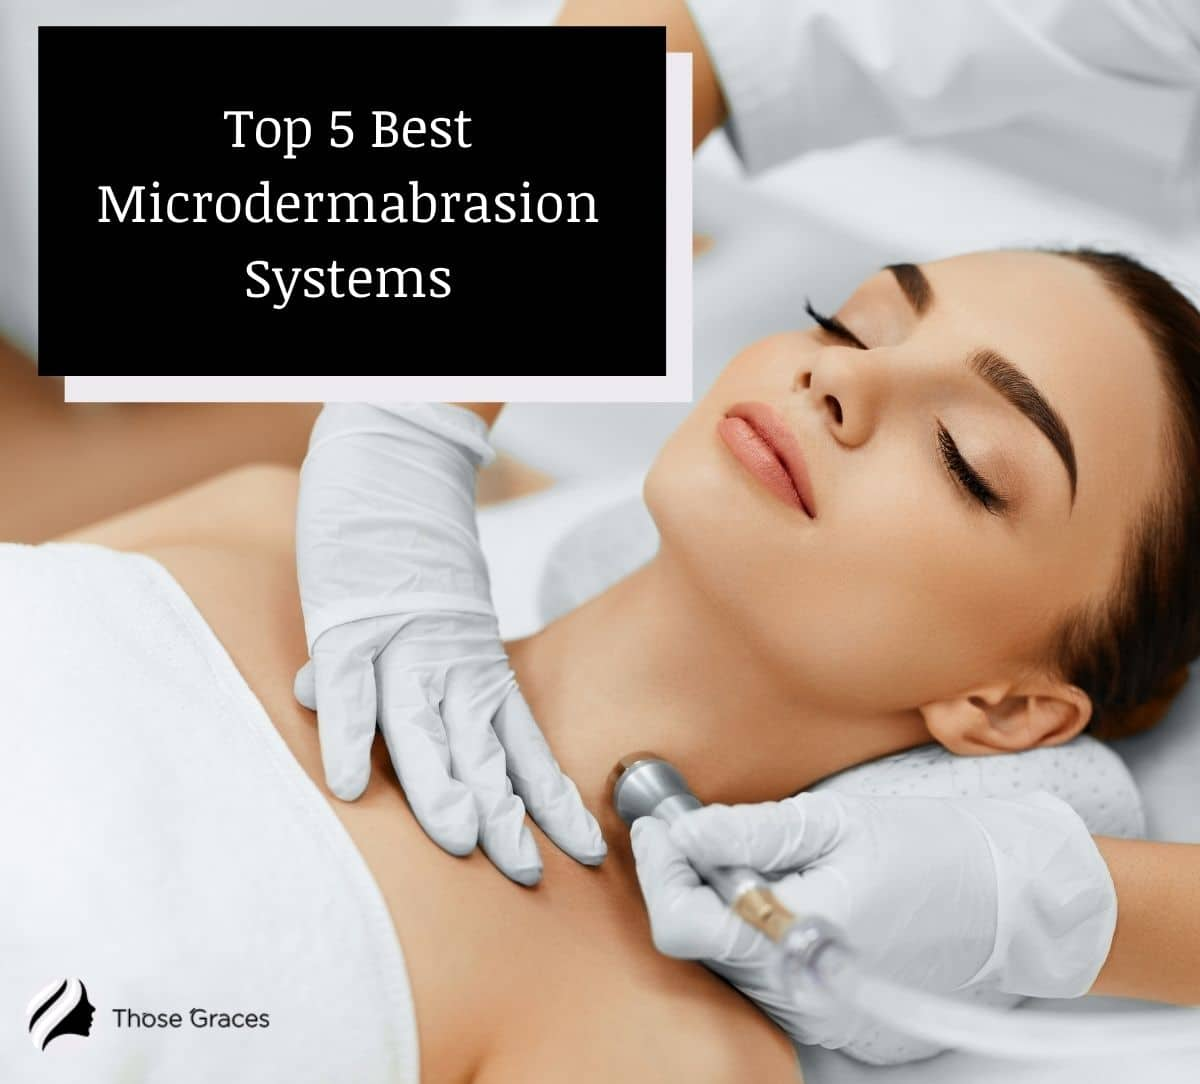 a beautiful lady having her skin treatment in a salon using the best microdermabrasion systems